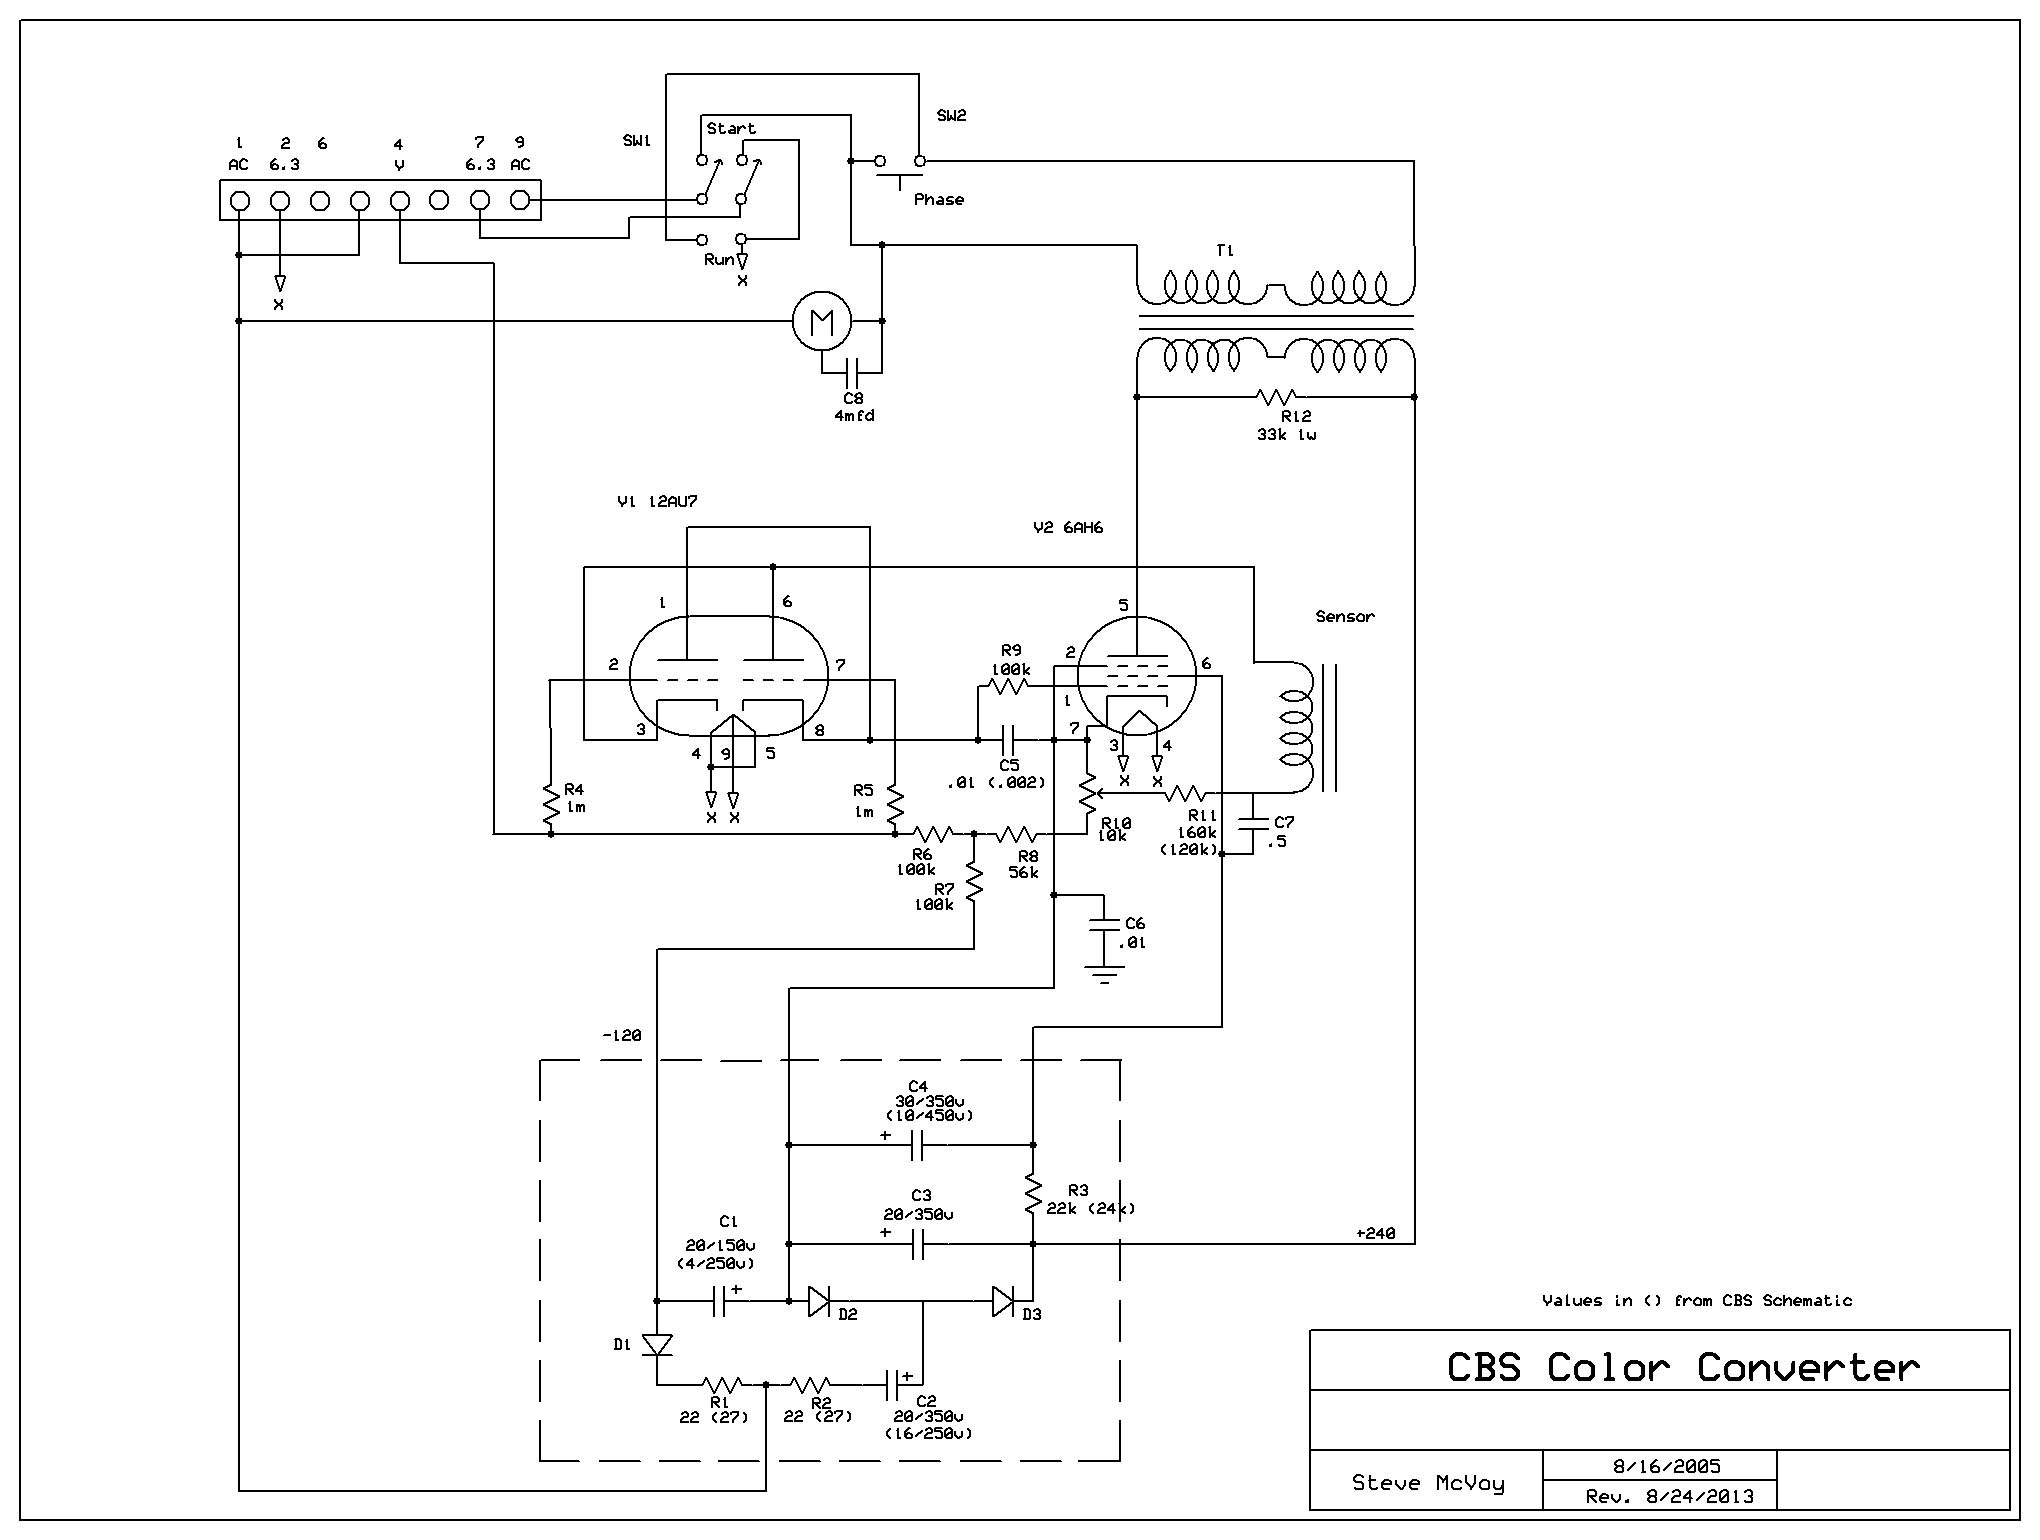 Tac 48 Refrigeration Wiring Diagram Third Level True Cooler Diagrams T 23 23f 49 Basic System